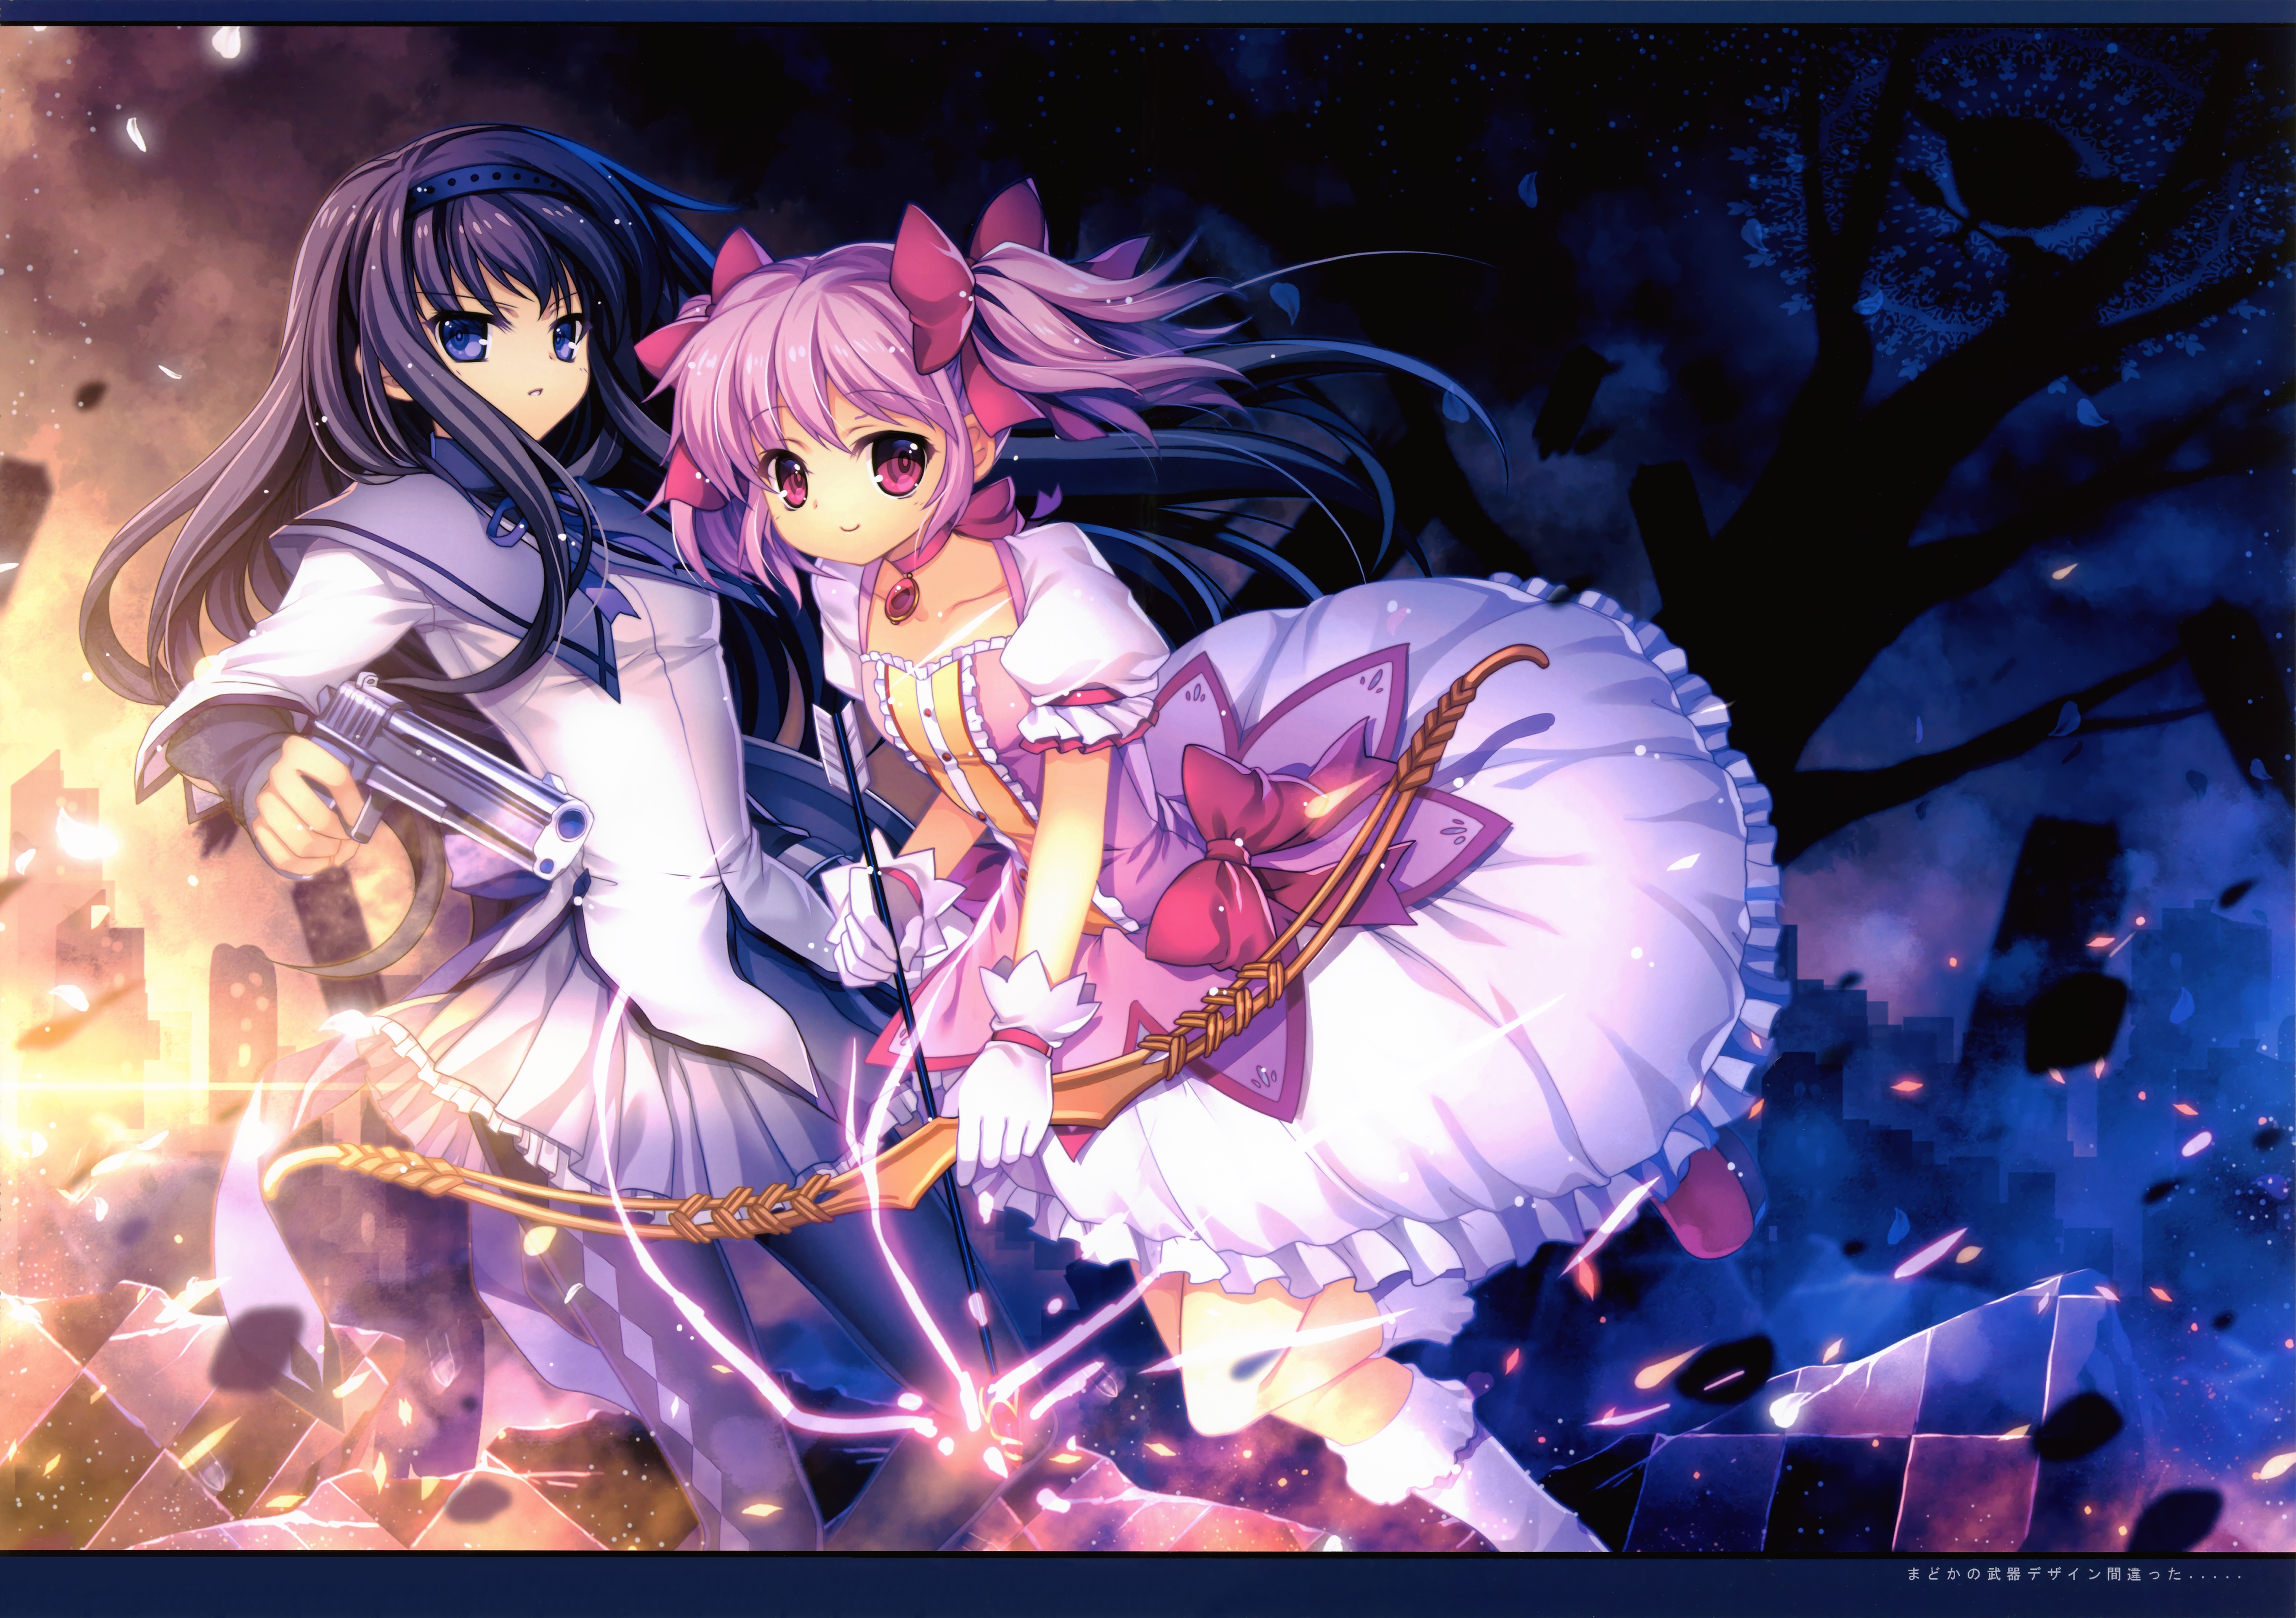 Image Result For Nightcore Anime Iphone Wallpaper